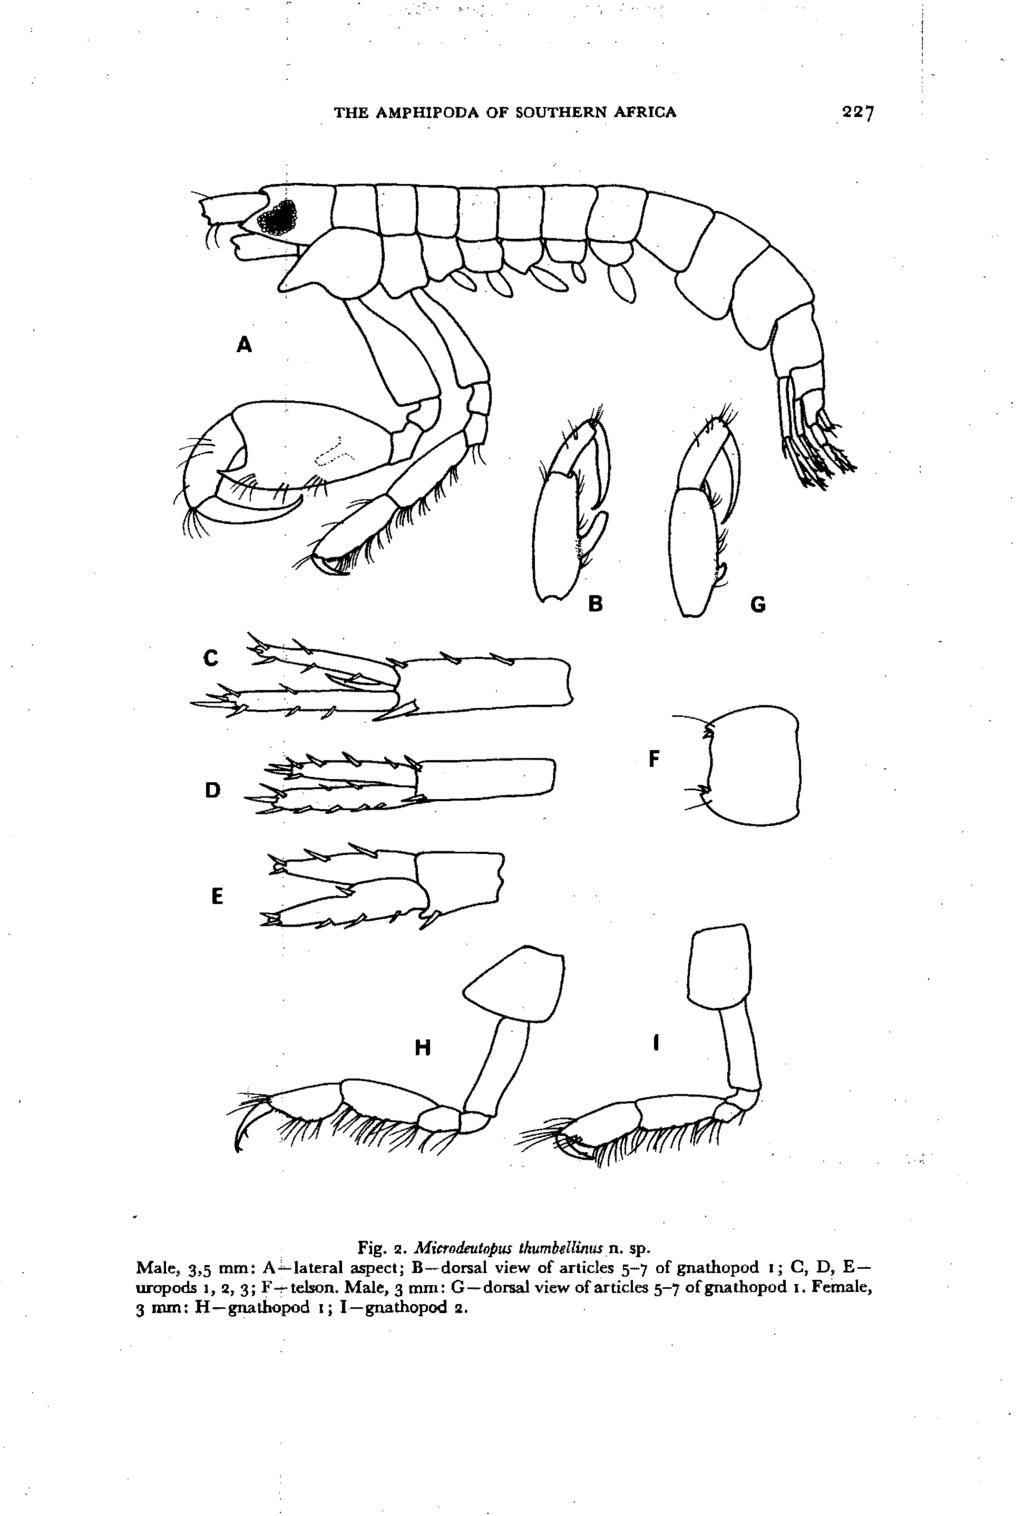 THE AMPHIPODA OF SOUTHERN AFRICA G E Fig. 2. Microdeutopus thumbell